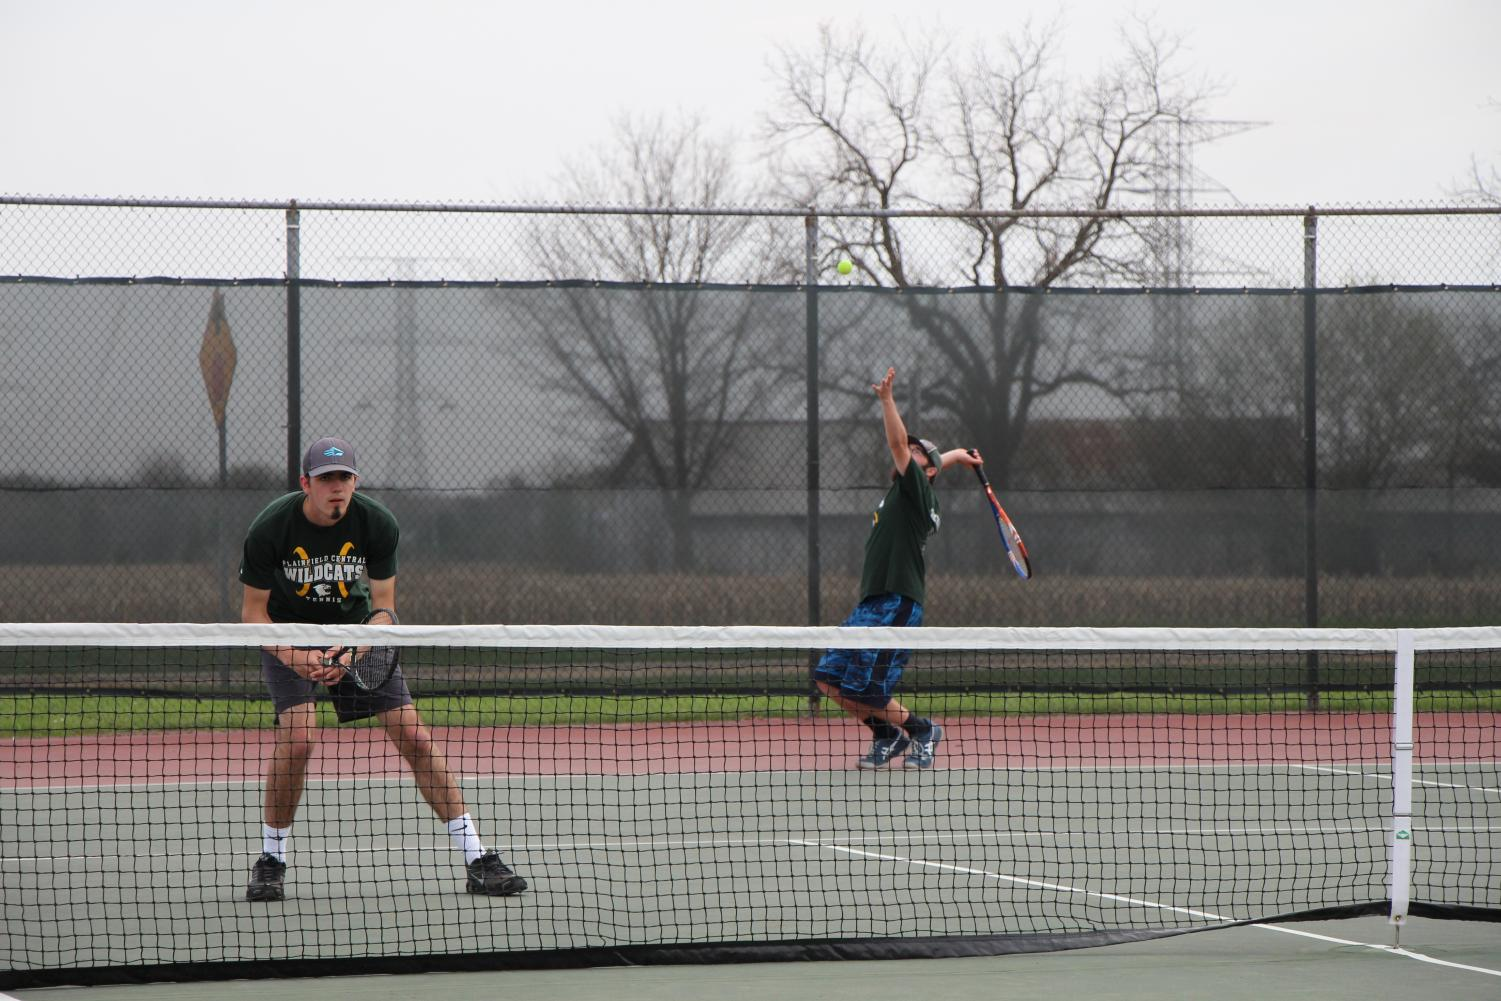 Senior Sam Jackson prepares for the return as his partner, senior Noah Bylon serves.